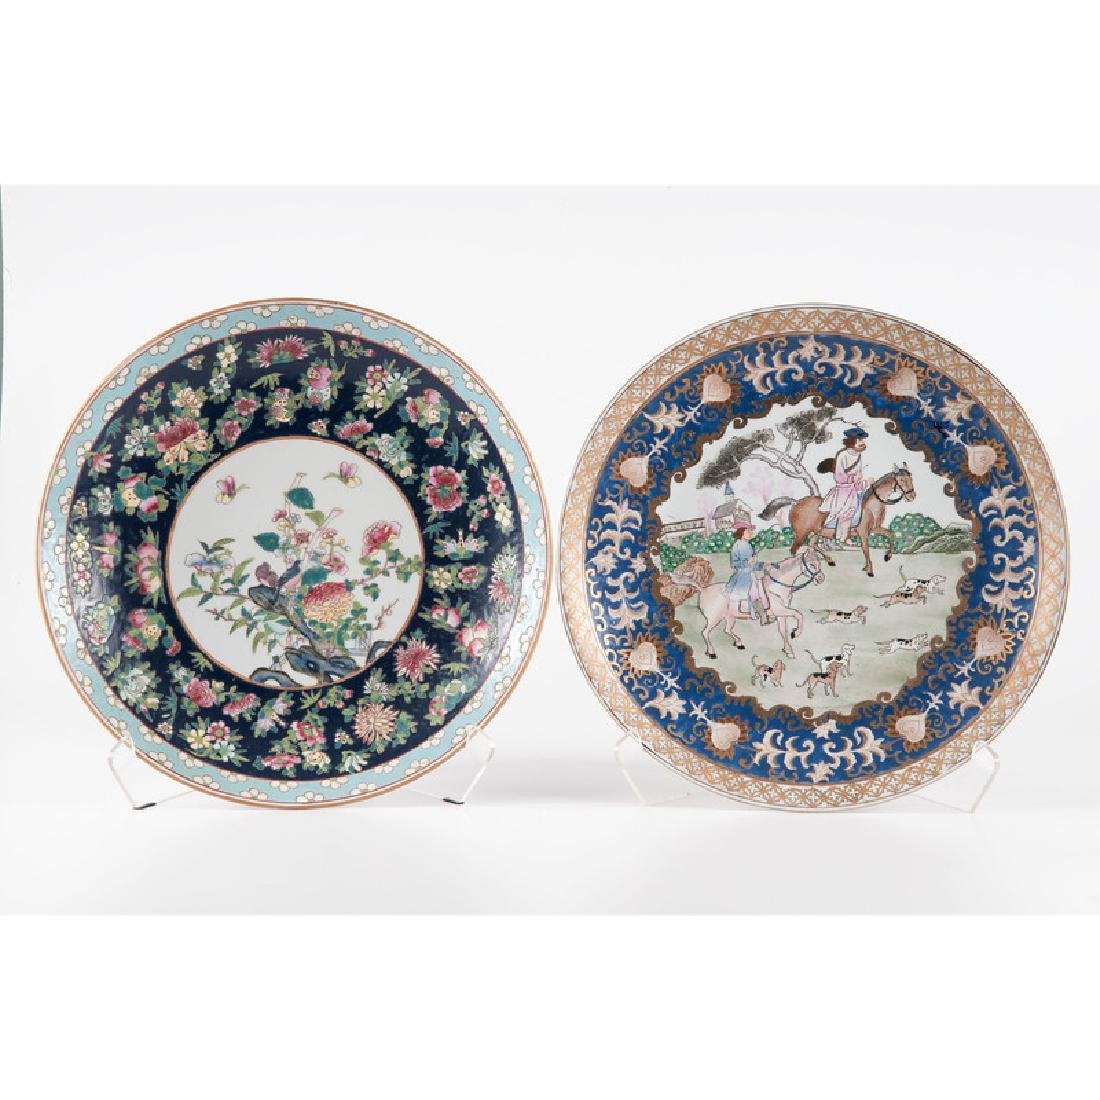 Chinese Porcelain Chargers